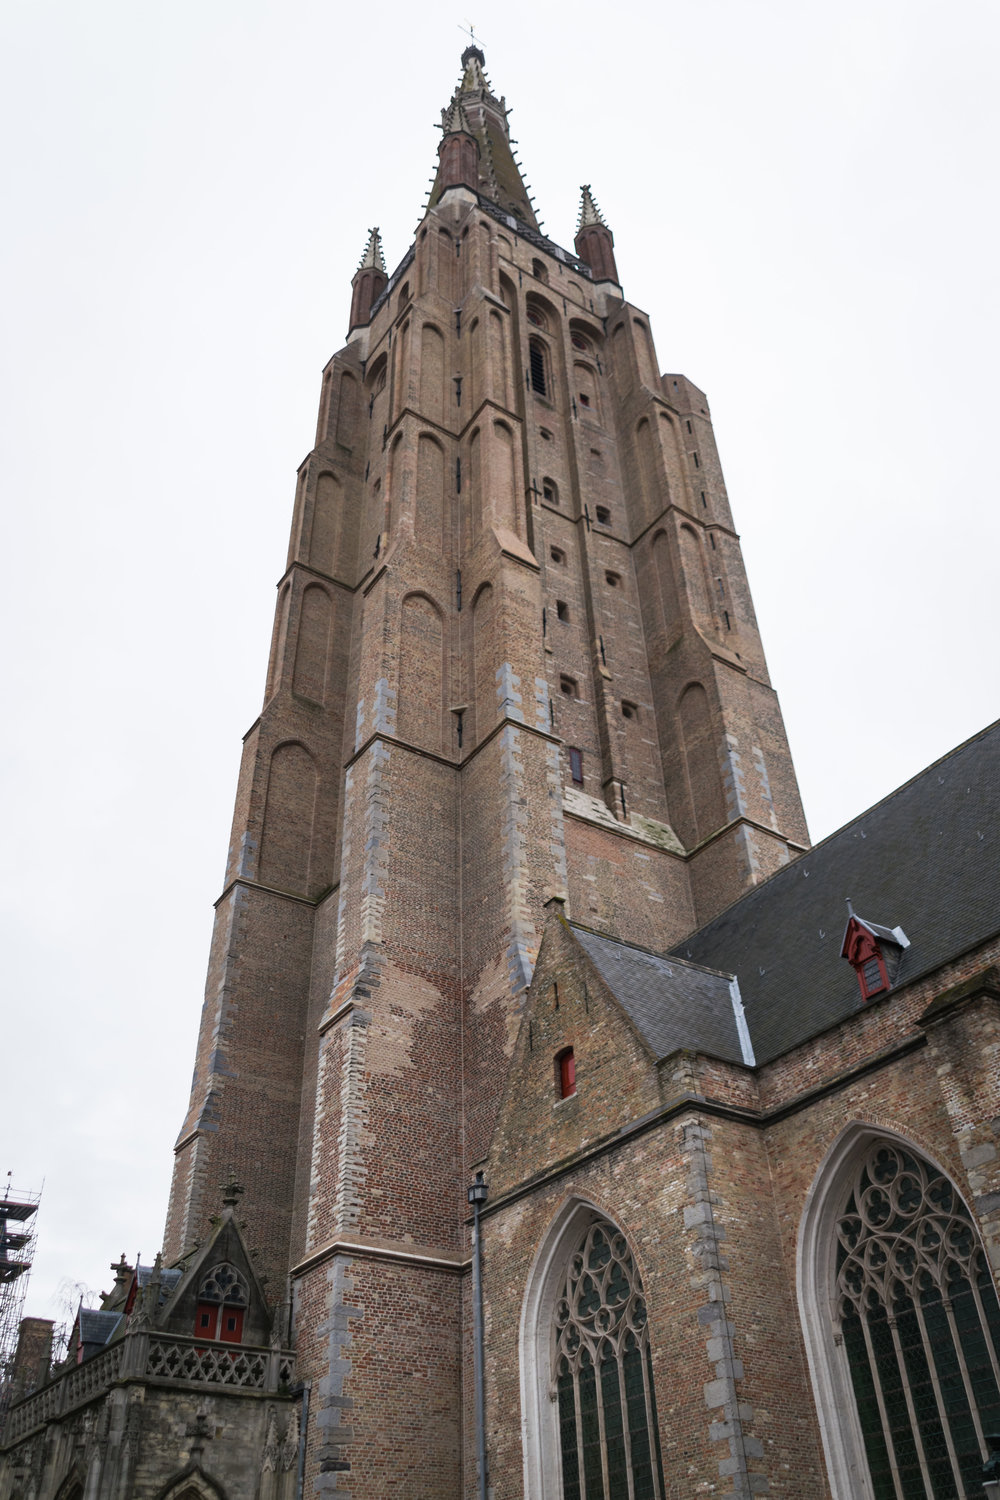 Sint-Salvatorskathedraal